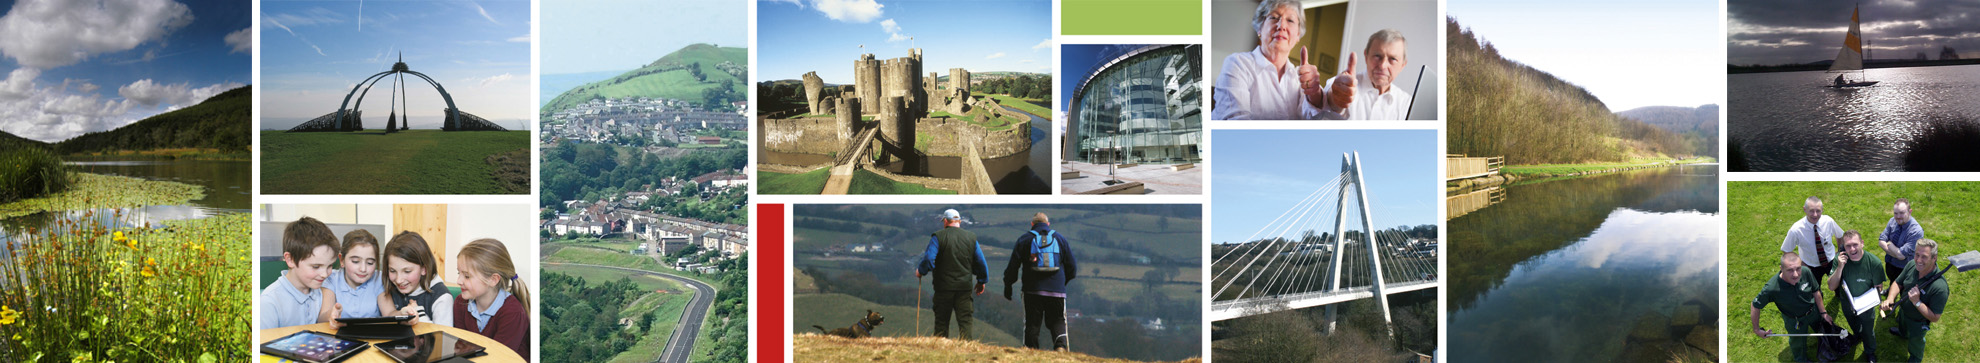 Caerphilly County Borough